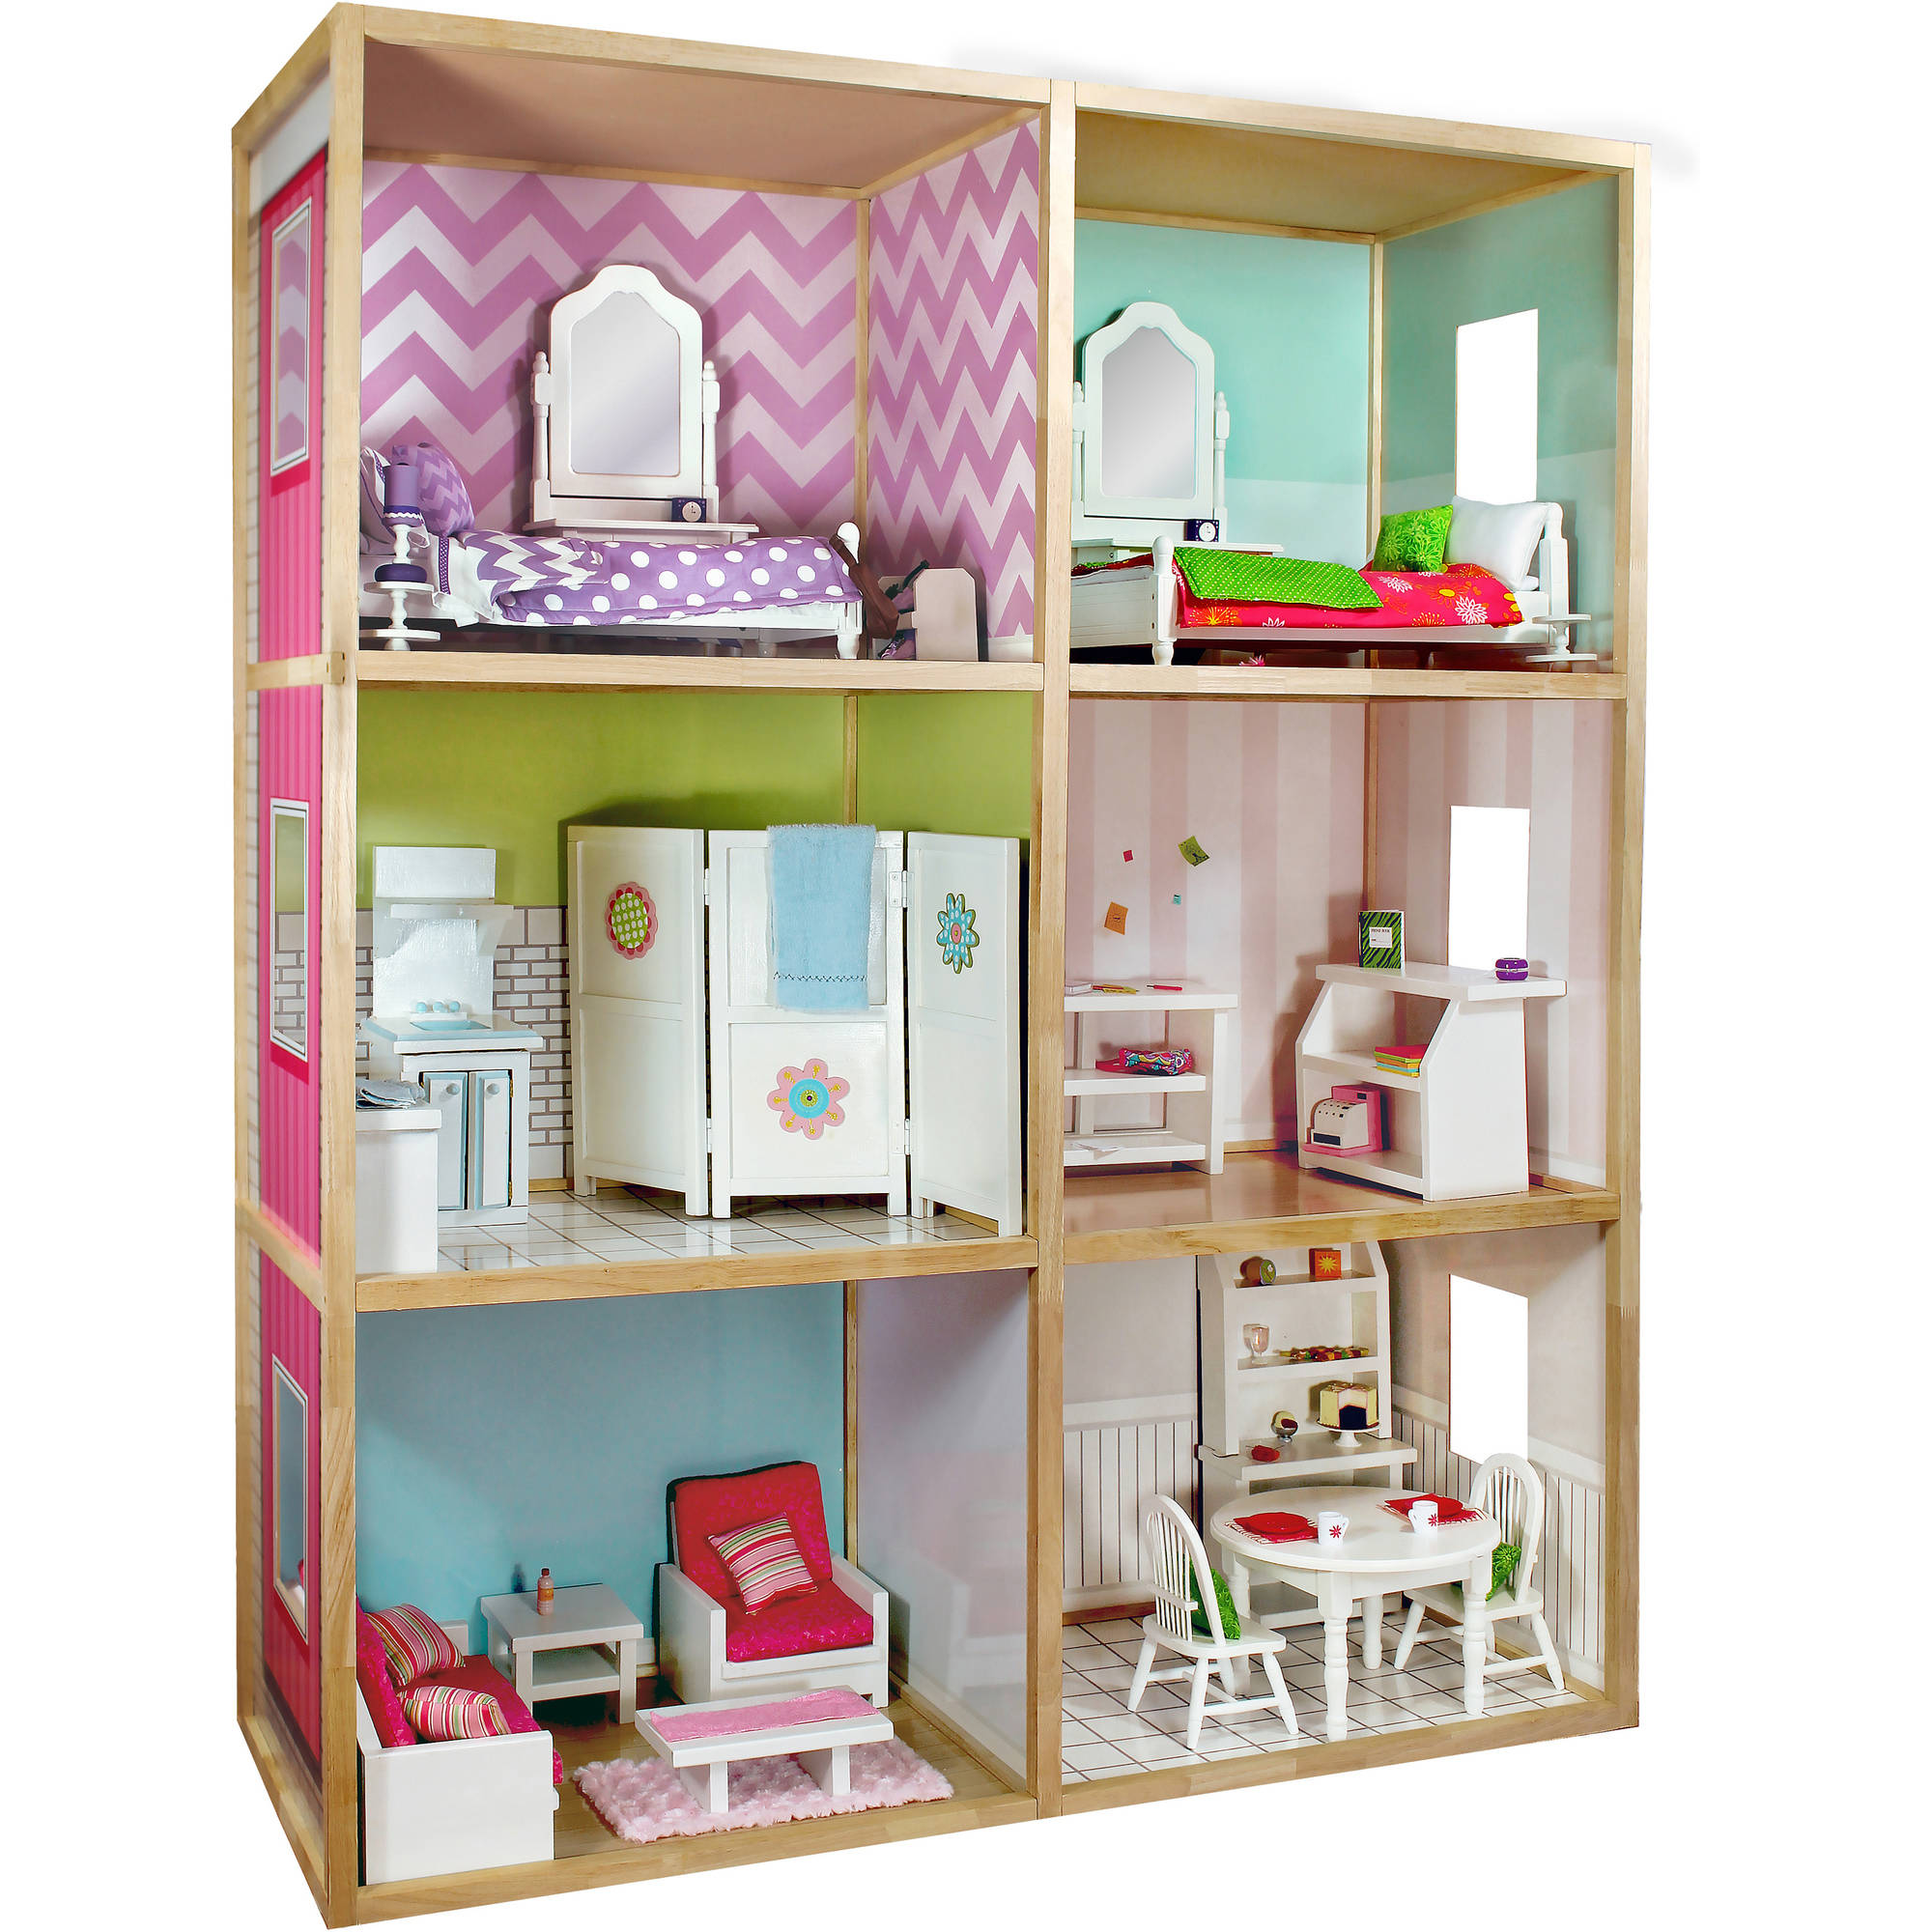 Miraculous My Girls Dollhouse For 18 Dolls Modern Style Walmart Com Home Interior And Landscaping Ologienasavecom